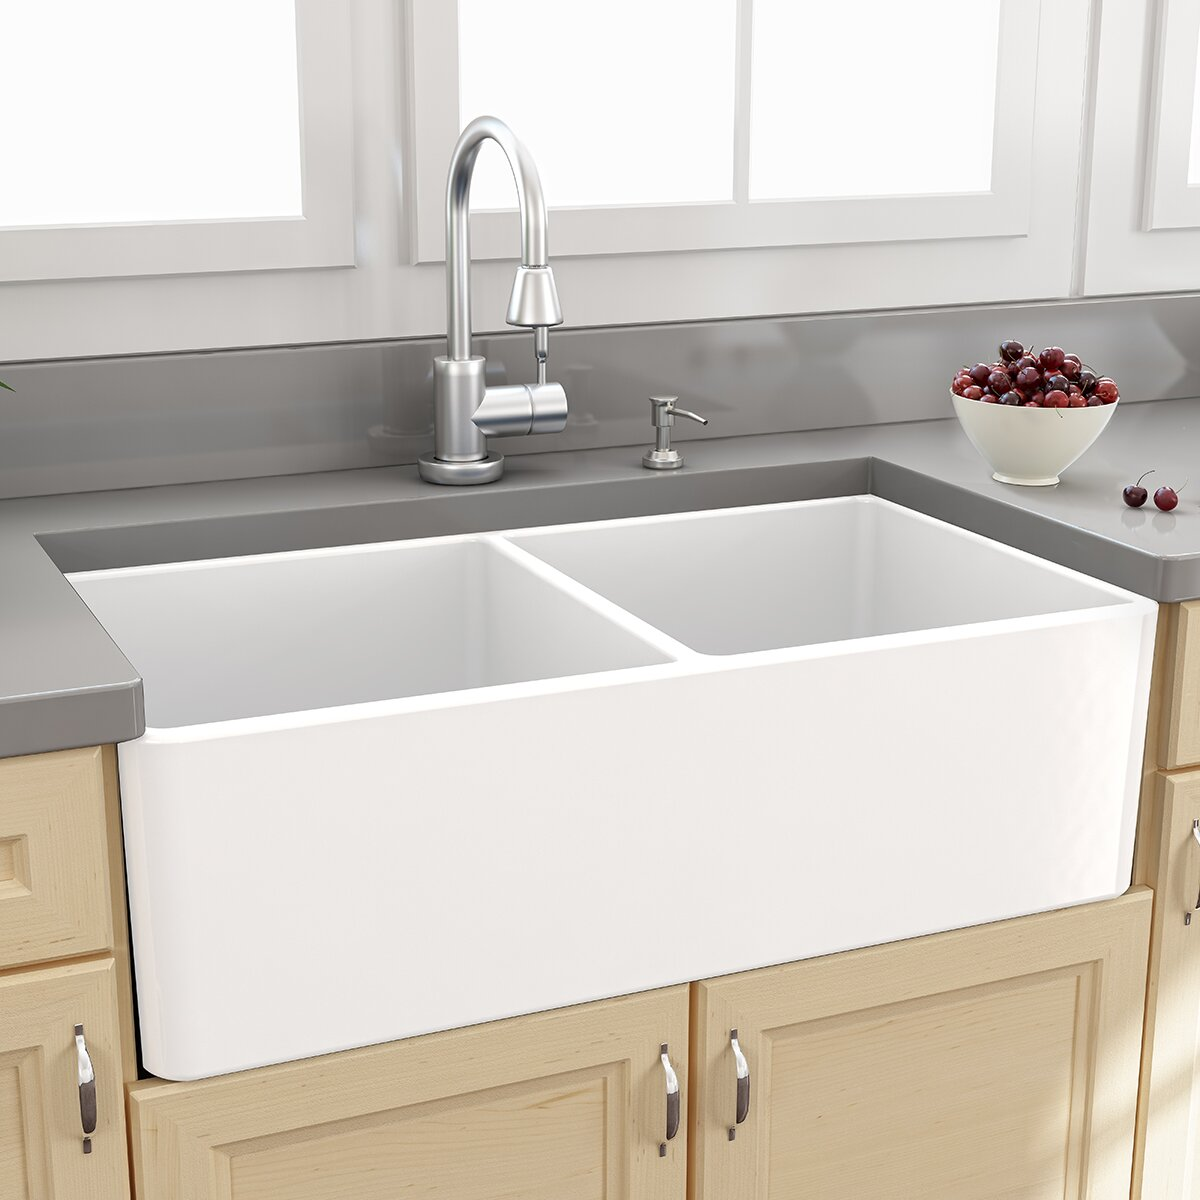 Curved Ceramic Kitchen Sink - Kitchen Appliances Tips And Review